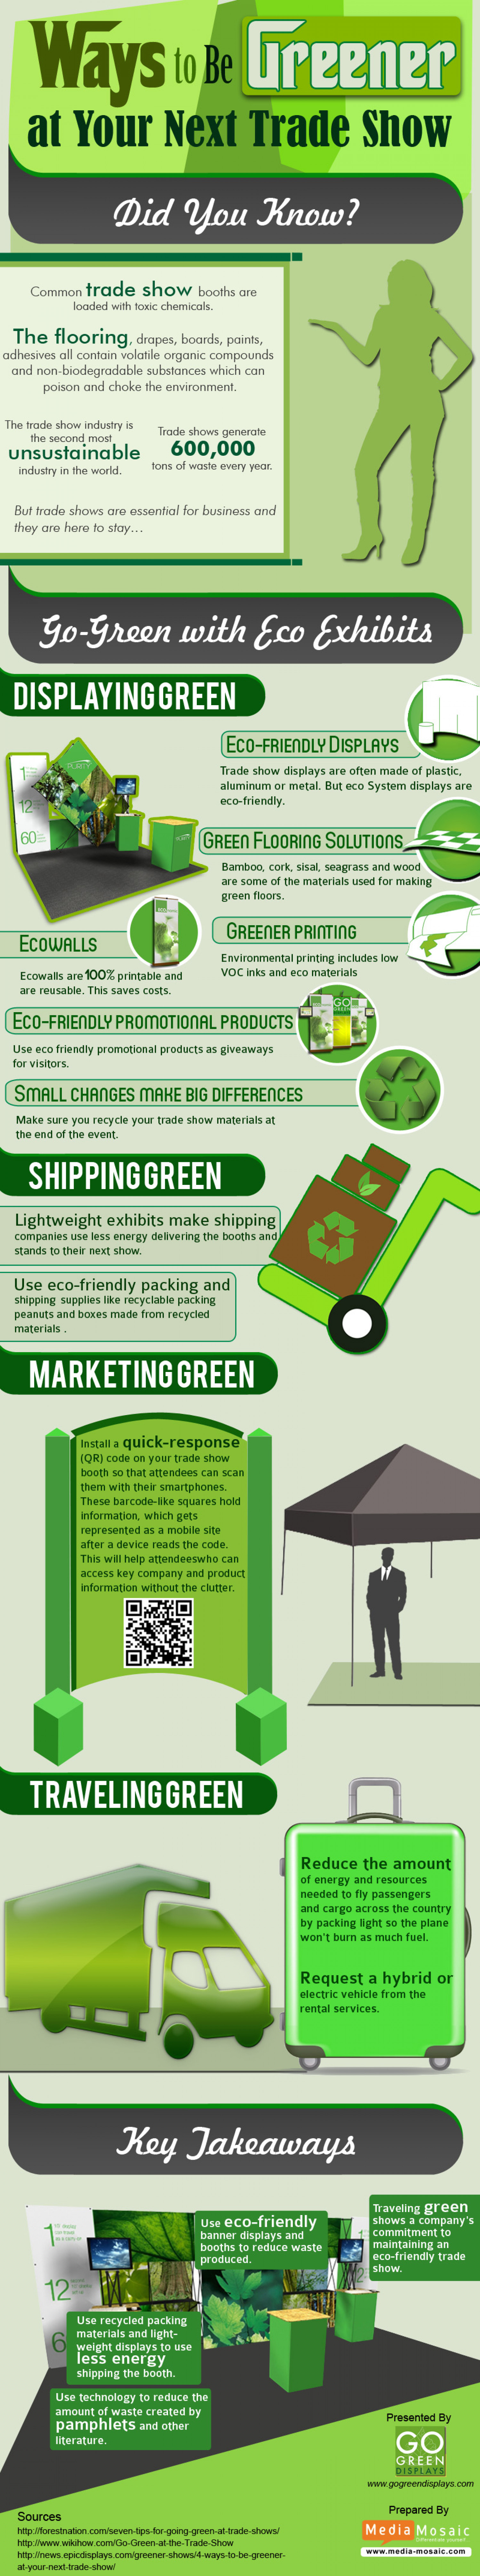 Ways To Be Greener At Your Next Trade Show Infographic